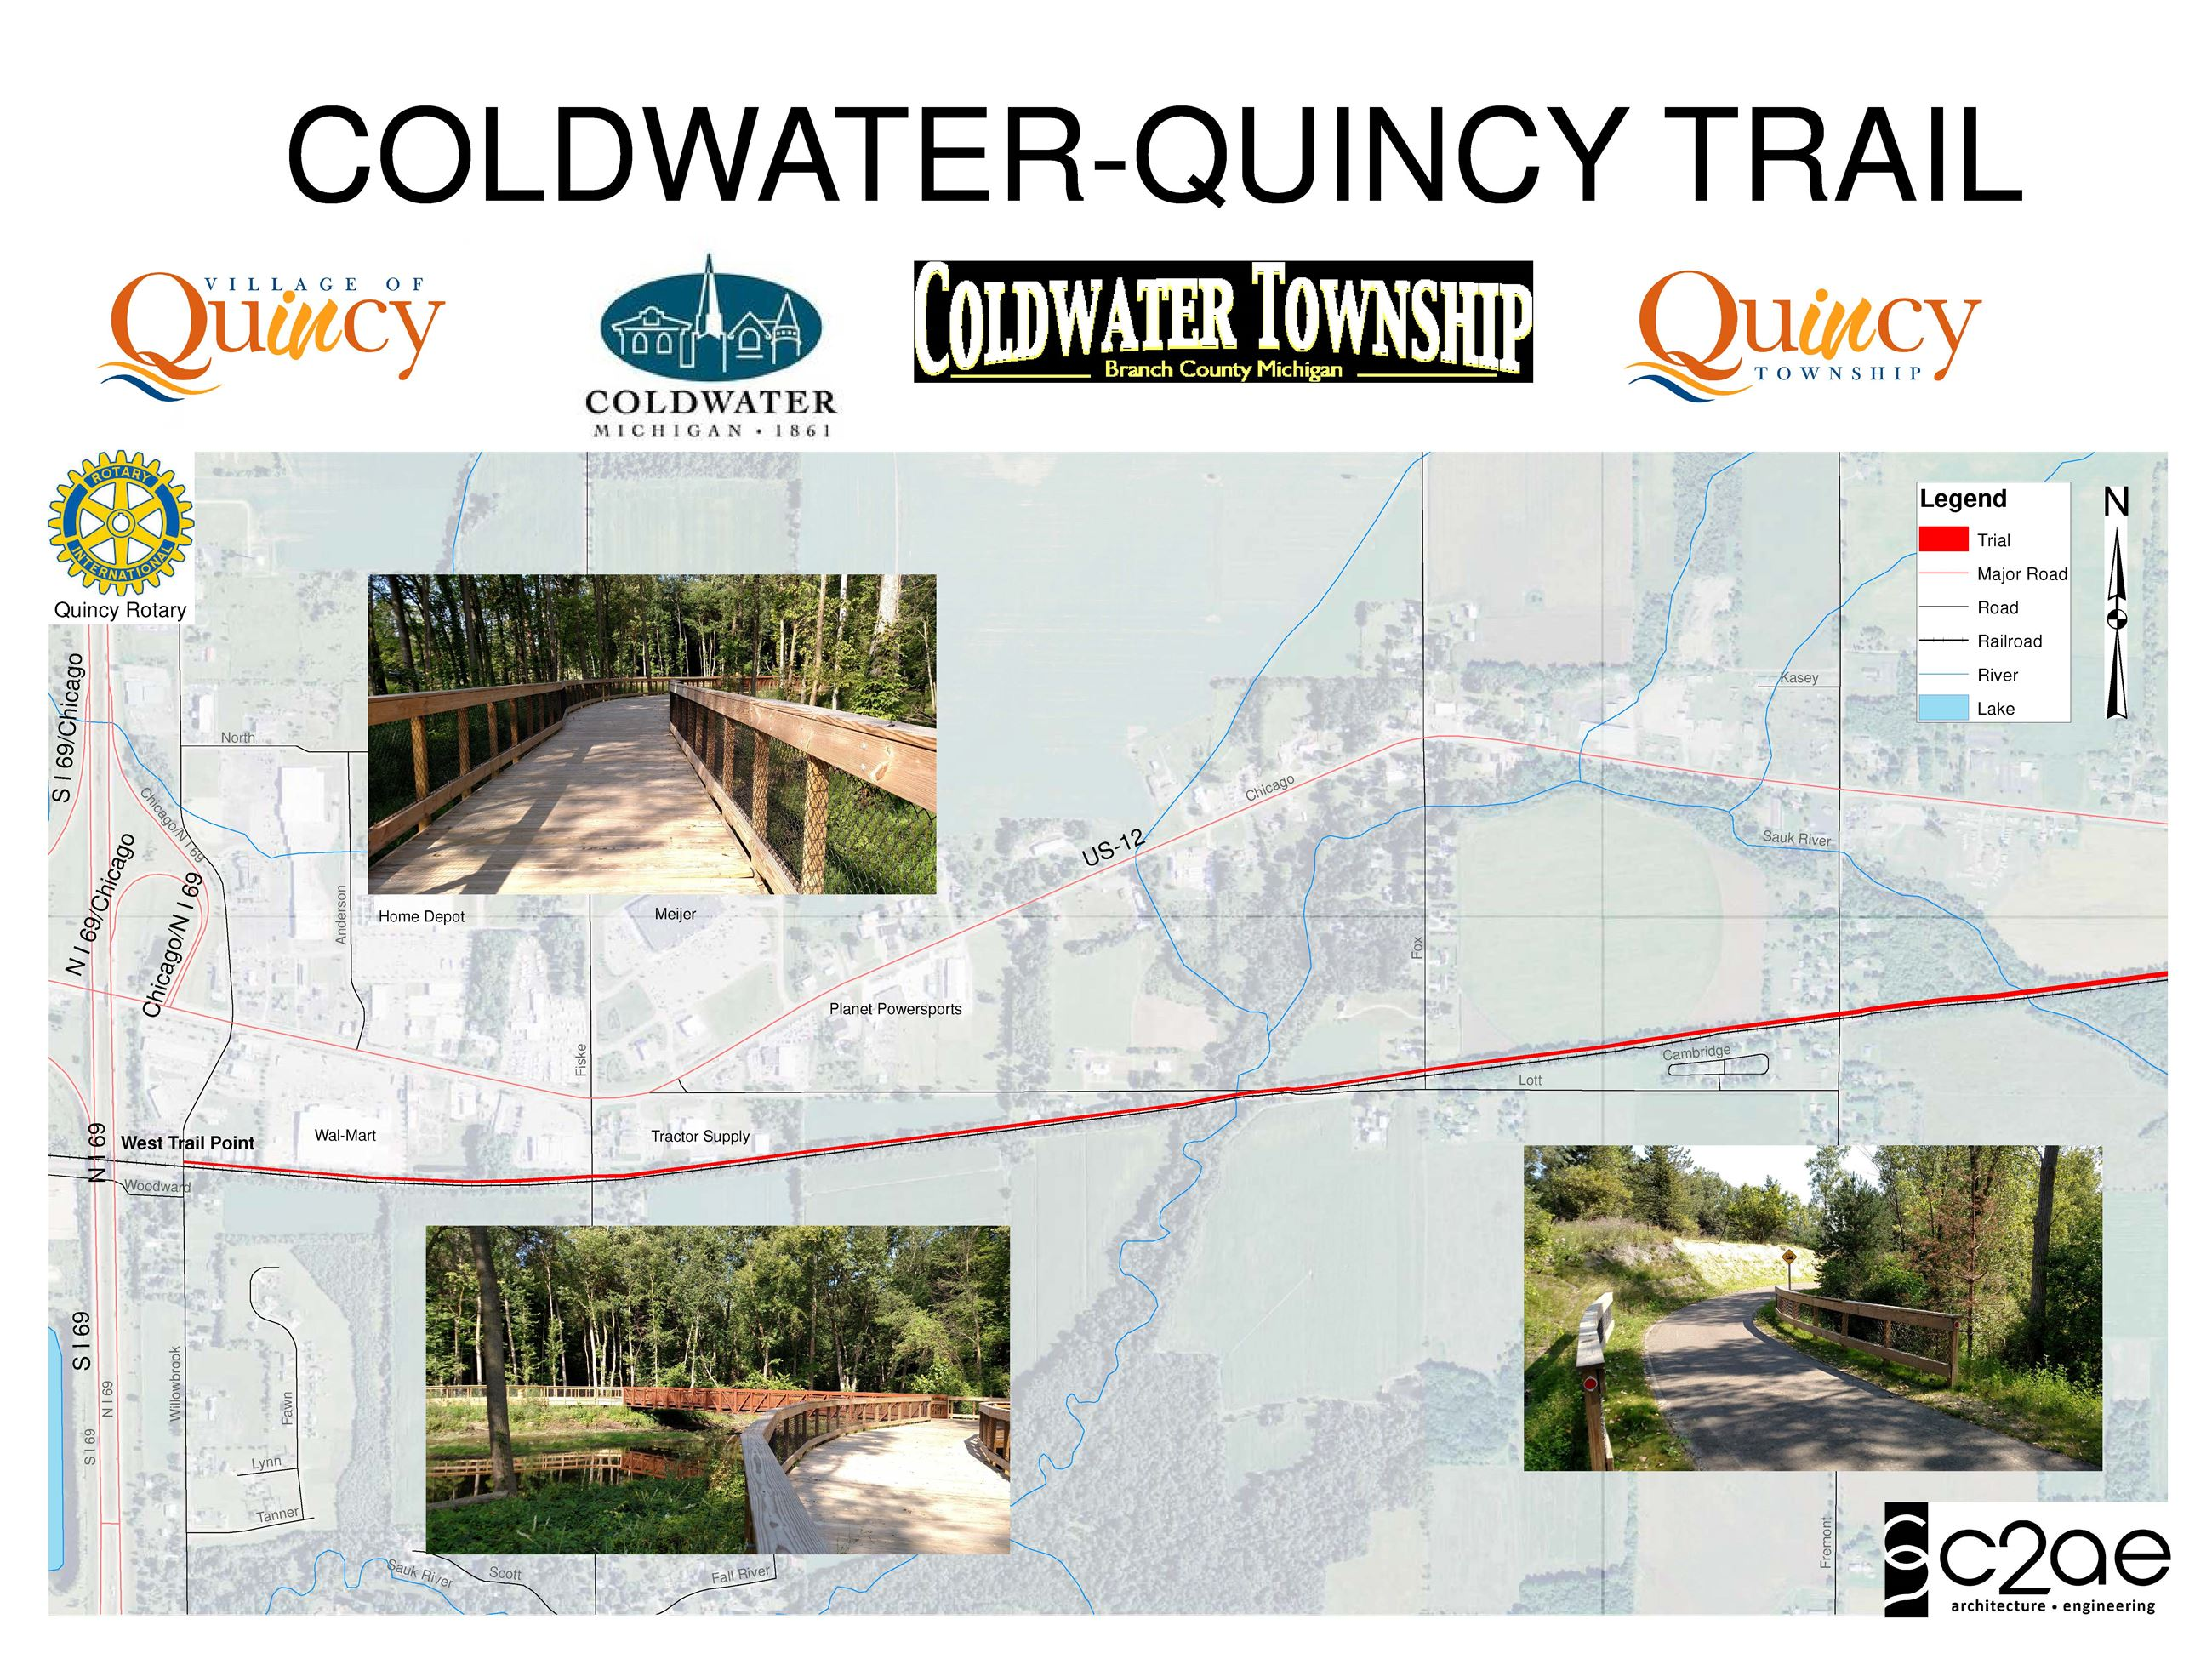 Coldwater-Quincy Trail West